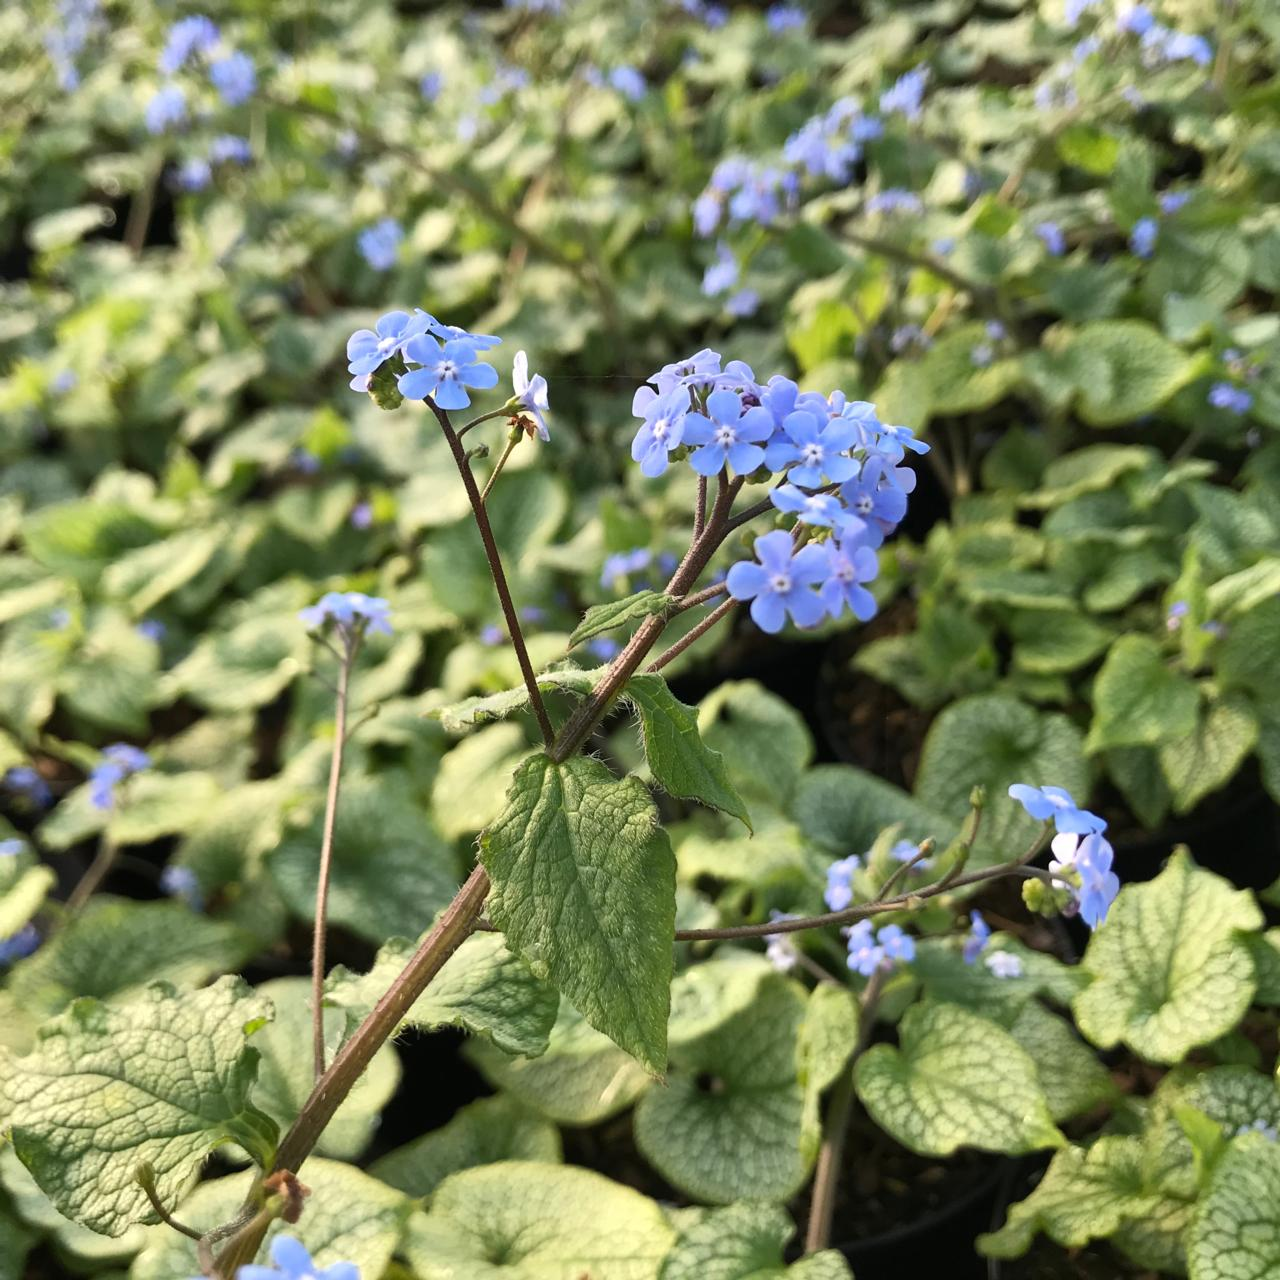 Brunnera macrophylla 'Alexander's Great' (33961)